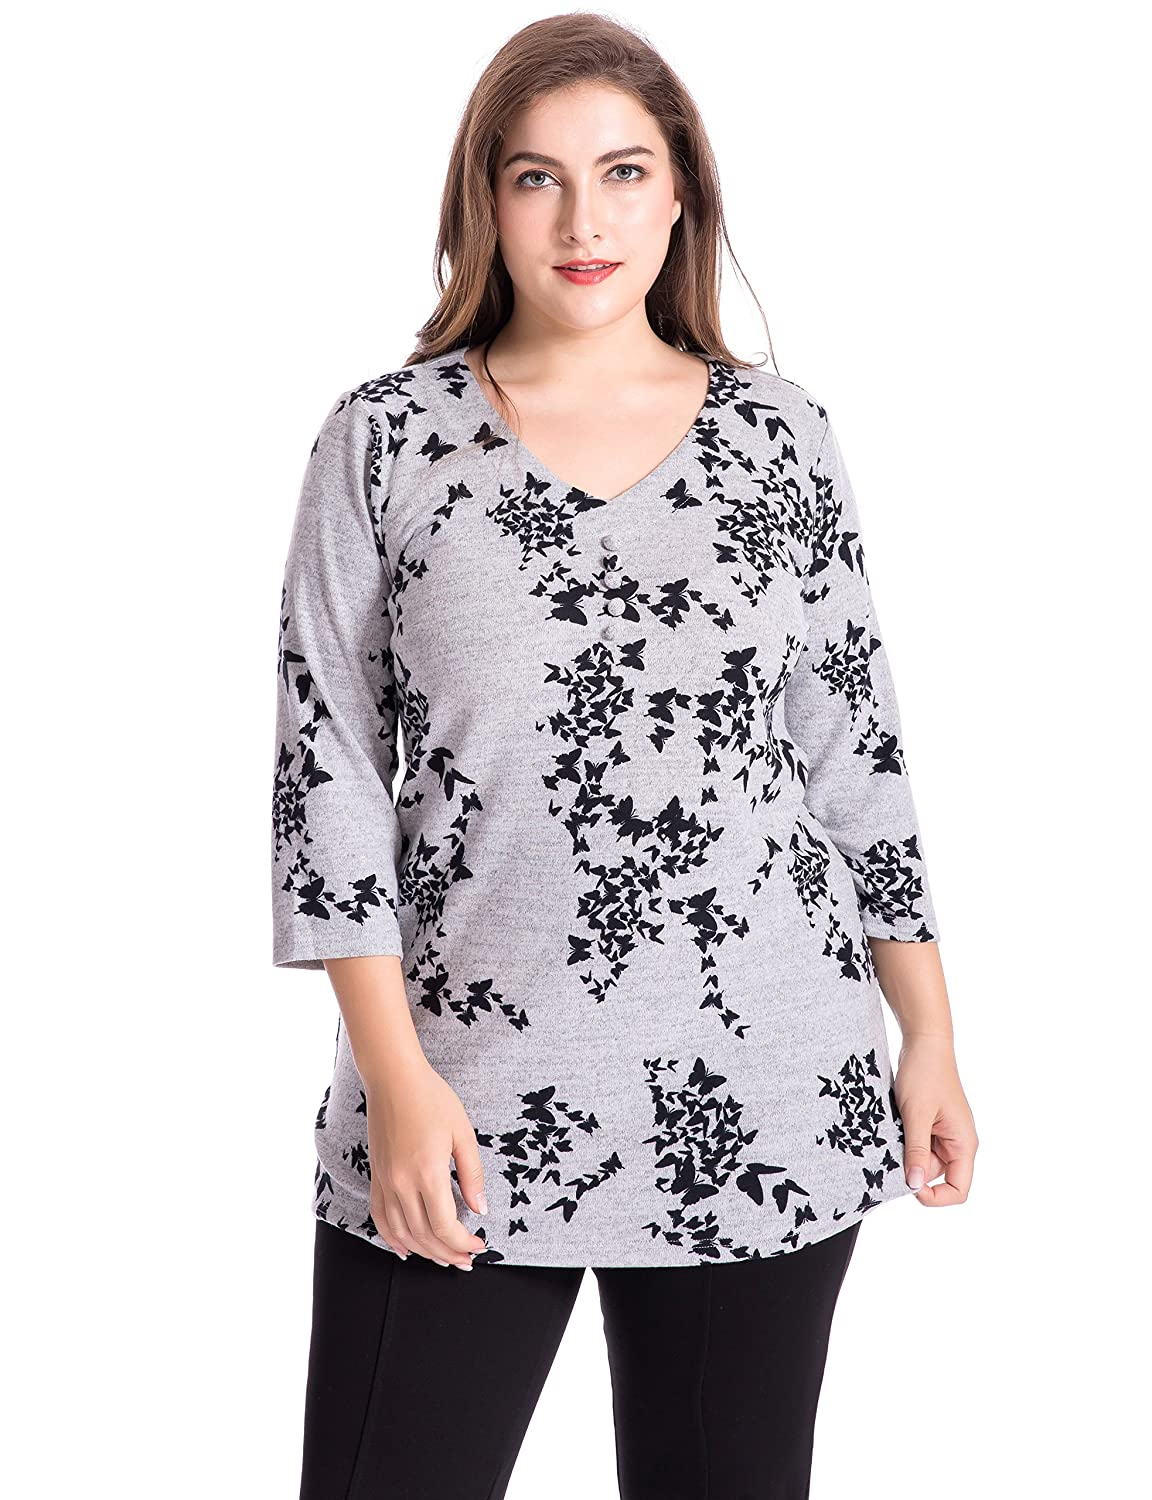 Chicwe Women's V-Neck Printed Cashmere Touch Plus Size Tunic Top US12-30 C16C091